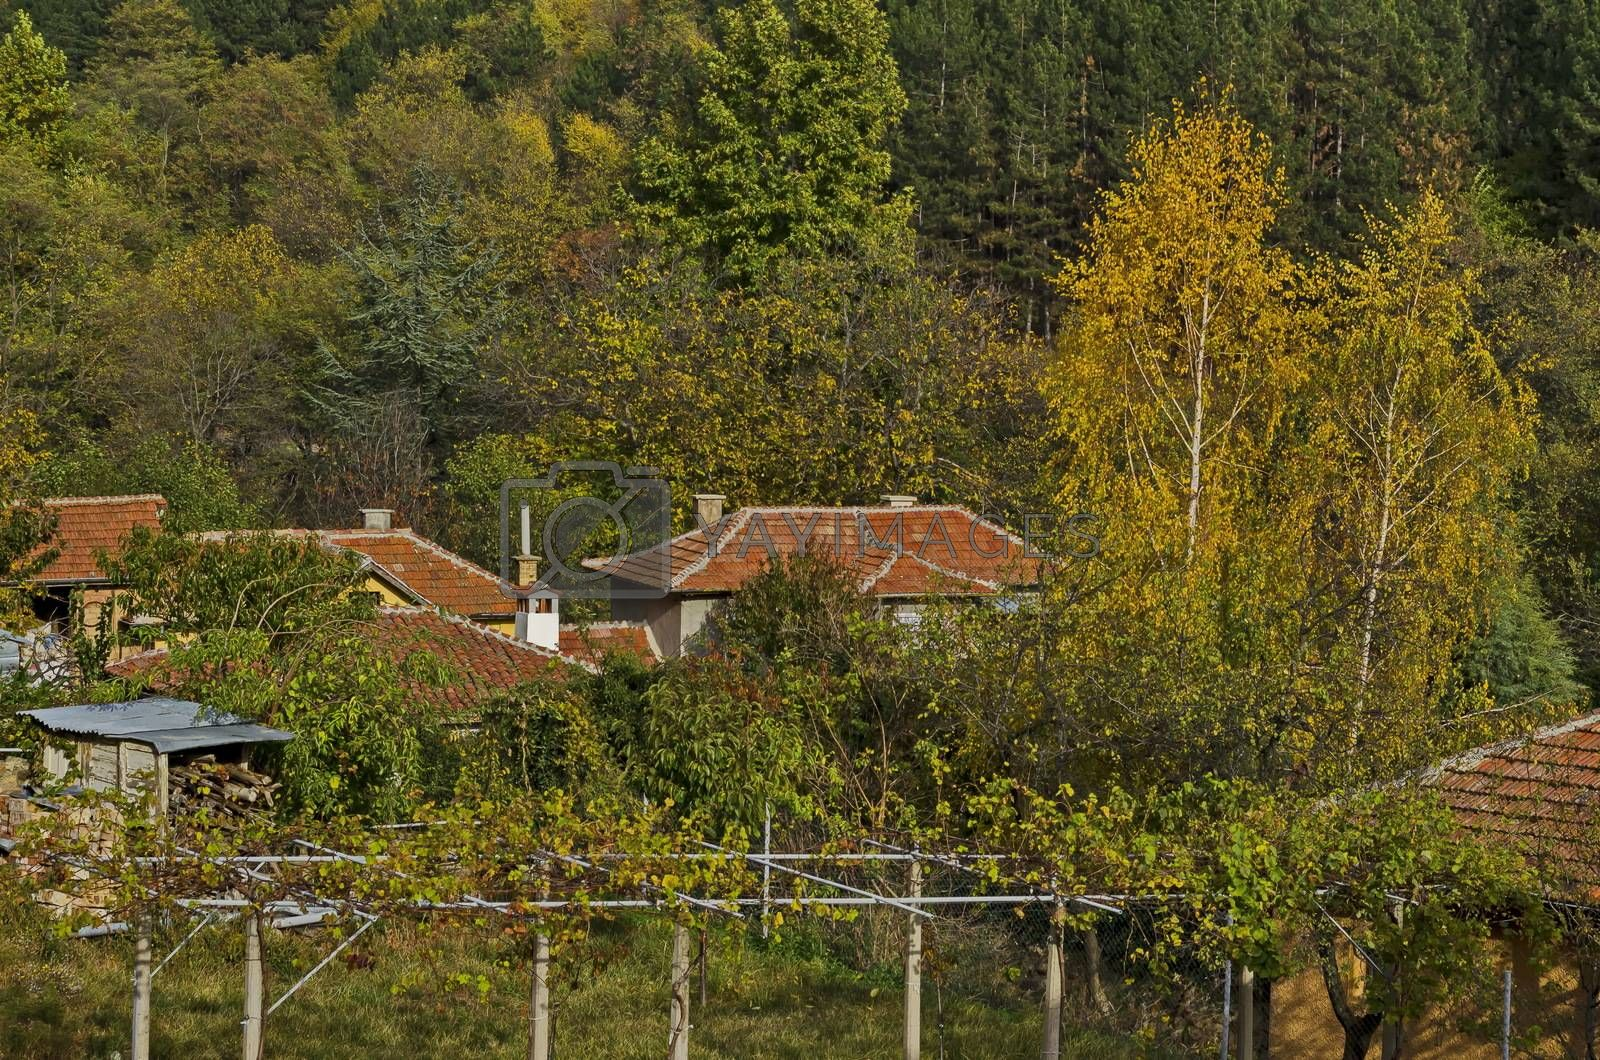 Autumnal colorful forest and houses in the town Maglizh, Balkan mountain, Bulgaria